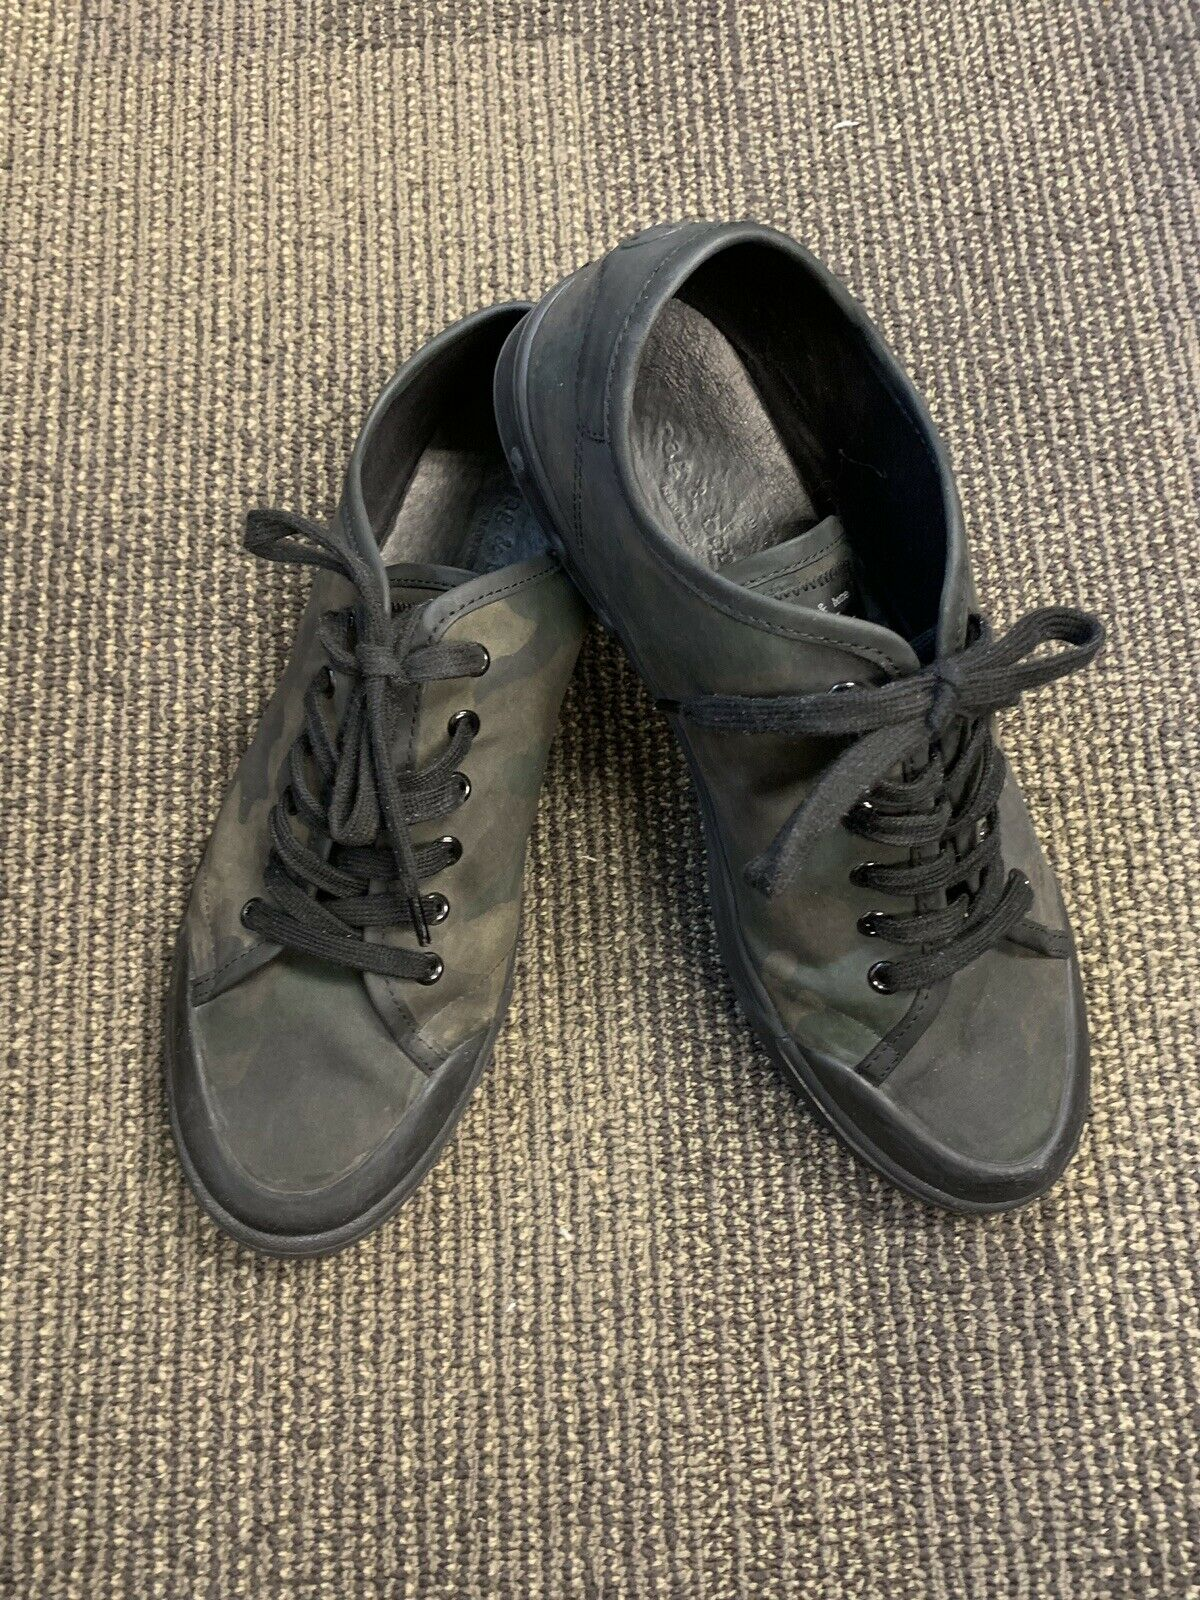 RAG & BONE STANDARD ISSUE CAMO Printed Canvas sneakers 44.5 (US 11.5) Pre-owned